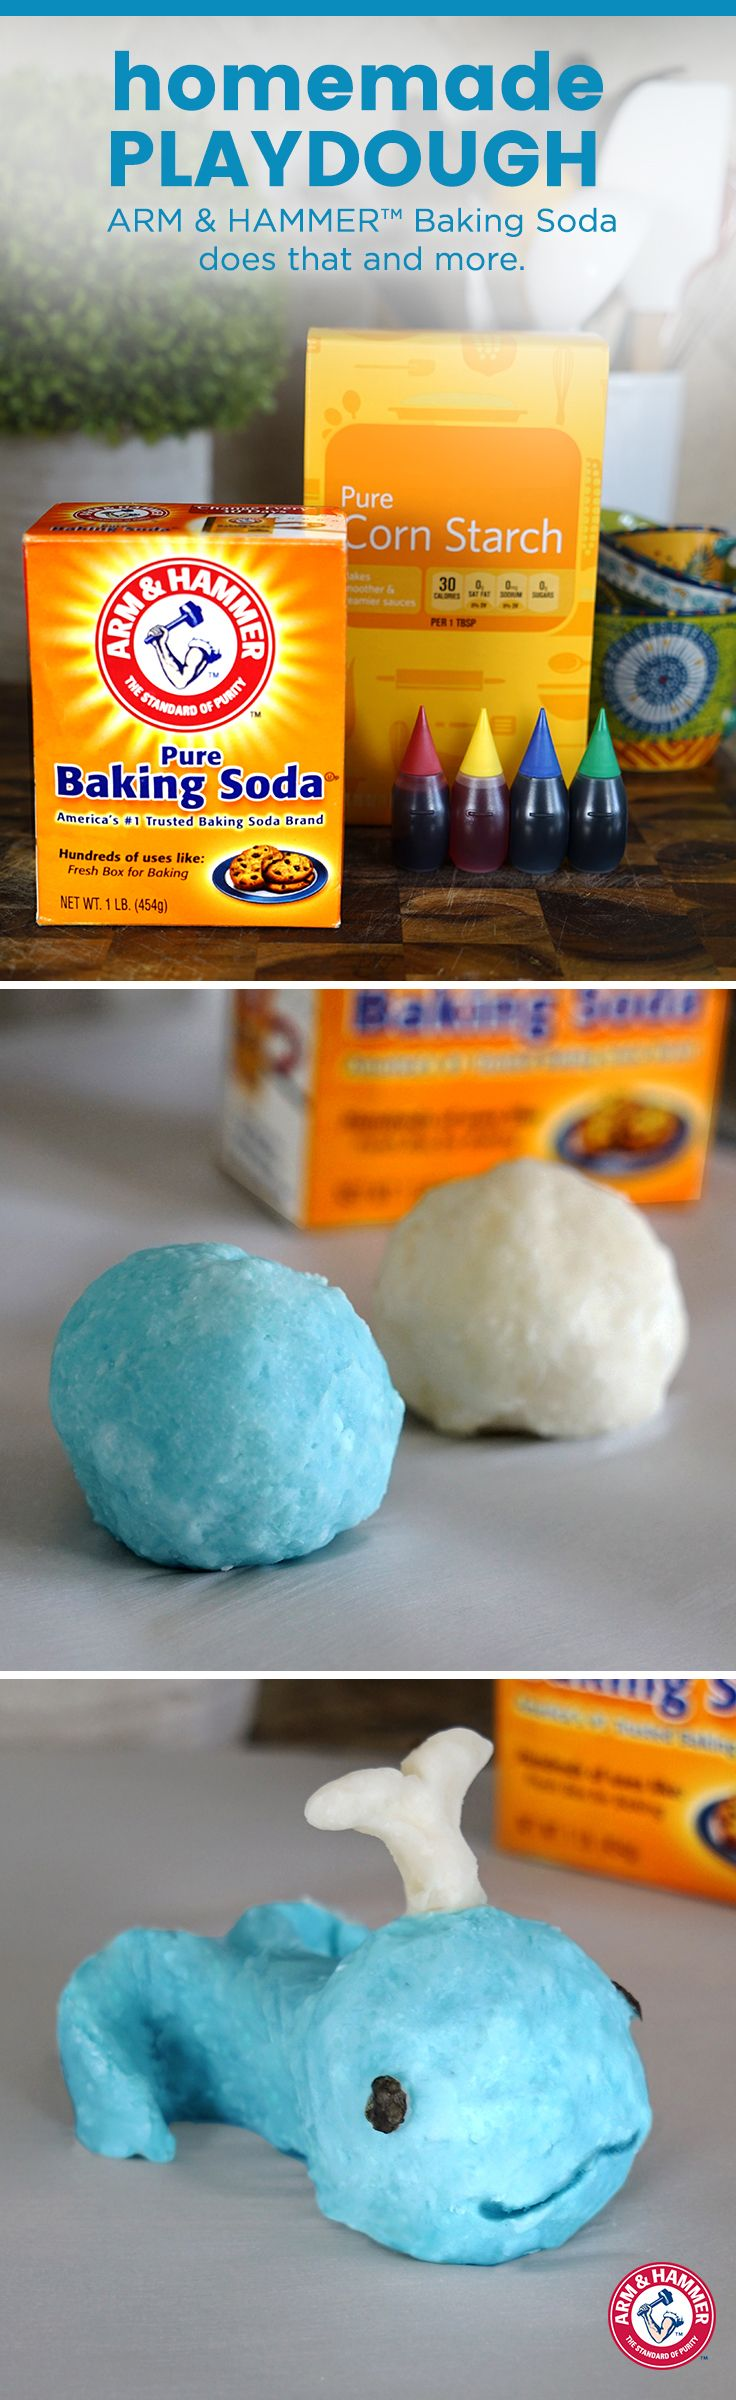 Kids at home for the day? We have the perfect activity to keep them busy and entertained! Just add 2 cups of ARM & HAMMER™ Baking Soda, 1 cup corn starch and 1 3/4 cups cold water into a saucepan. Cook over medium heat for 10-15 minutes and stir constantly. (TIP: for colorful clay, add a few drops of food coloring.) Once mixture reaches a gooey consistency, pour onto a plate and cover with a damp cloth. When cool, pat until smooth and let the squishy fun begin!